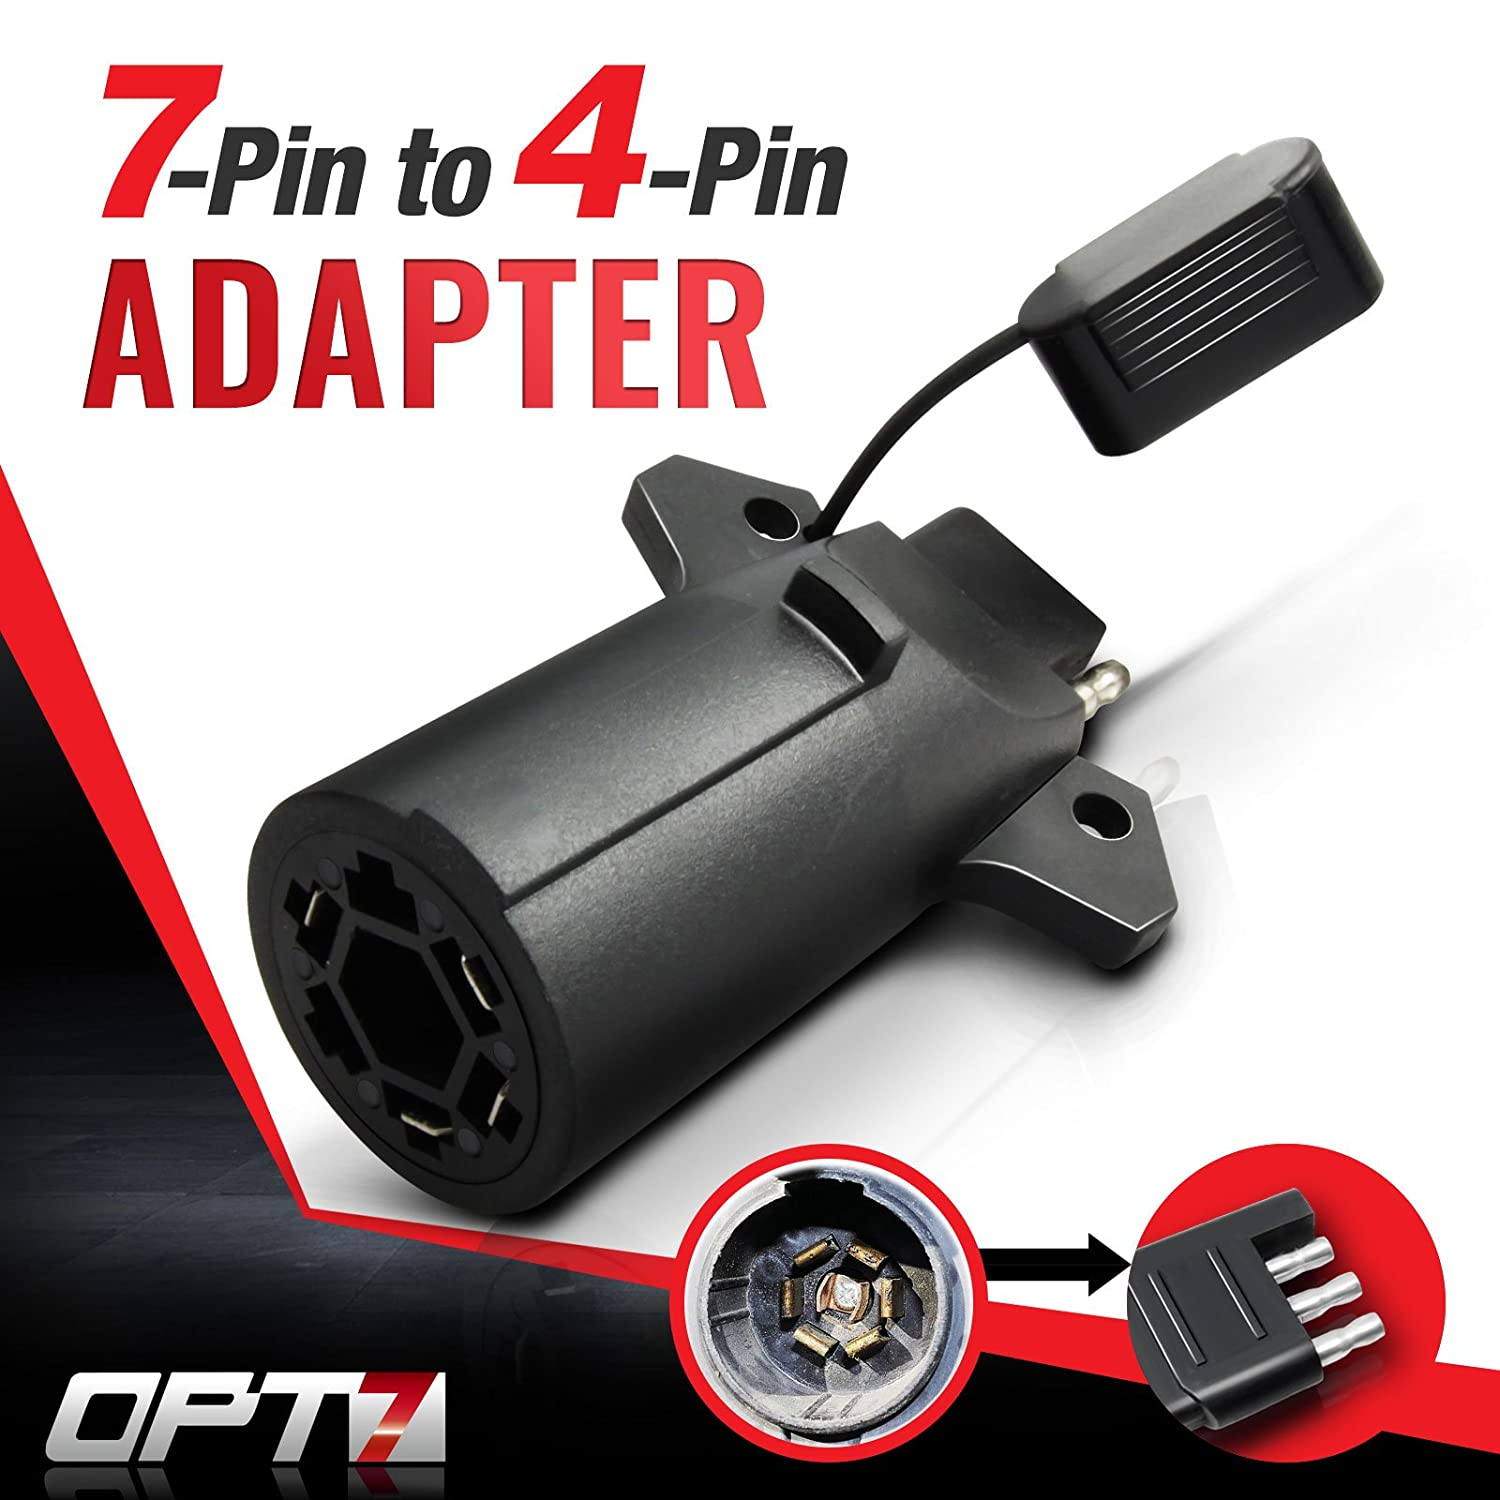 Amazon.com: OPT7 Weatherproof 7 Way Flat Blade to 4 Way Pin Adapter  w/Secure Tab - for Trailer Tow Hitch and Redline Tailgate LED: Automotive